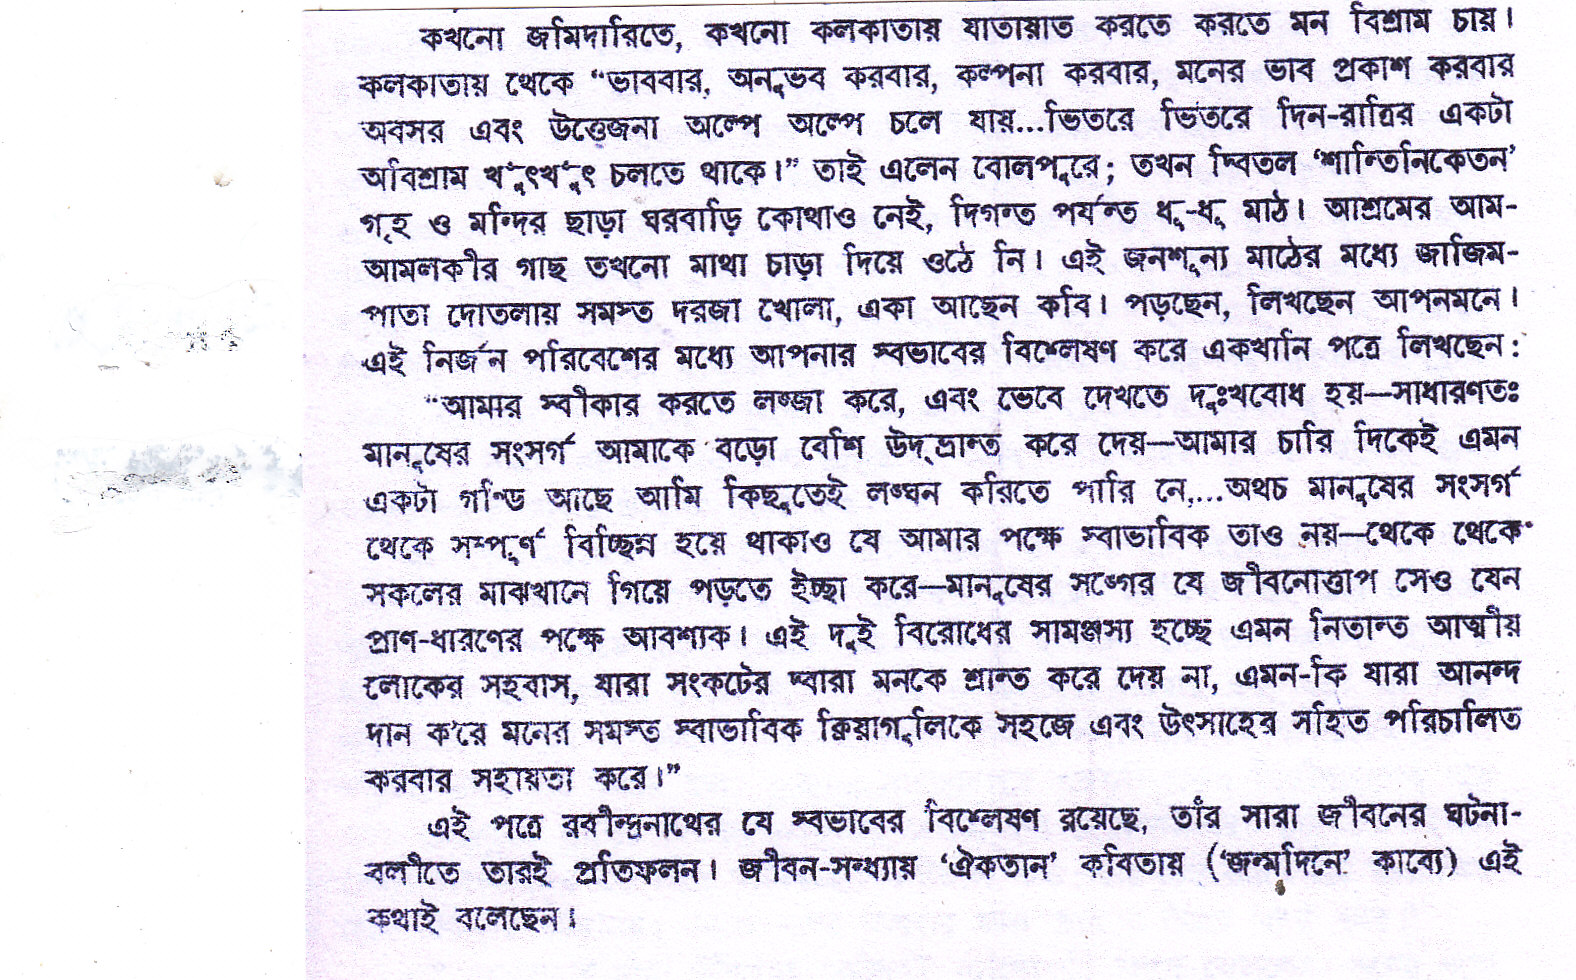 smaraka grantha  nabin chandra sen and rabindranath tagore were elected vice president for the first year rabindranath wrote the introduction of thakurmar jhuli written